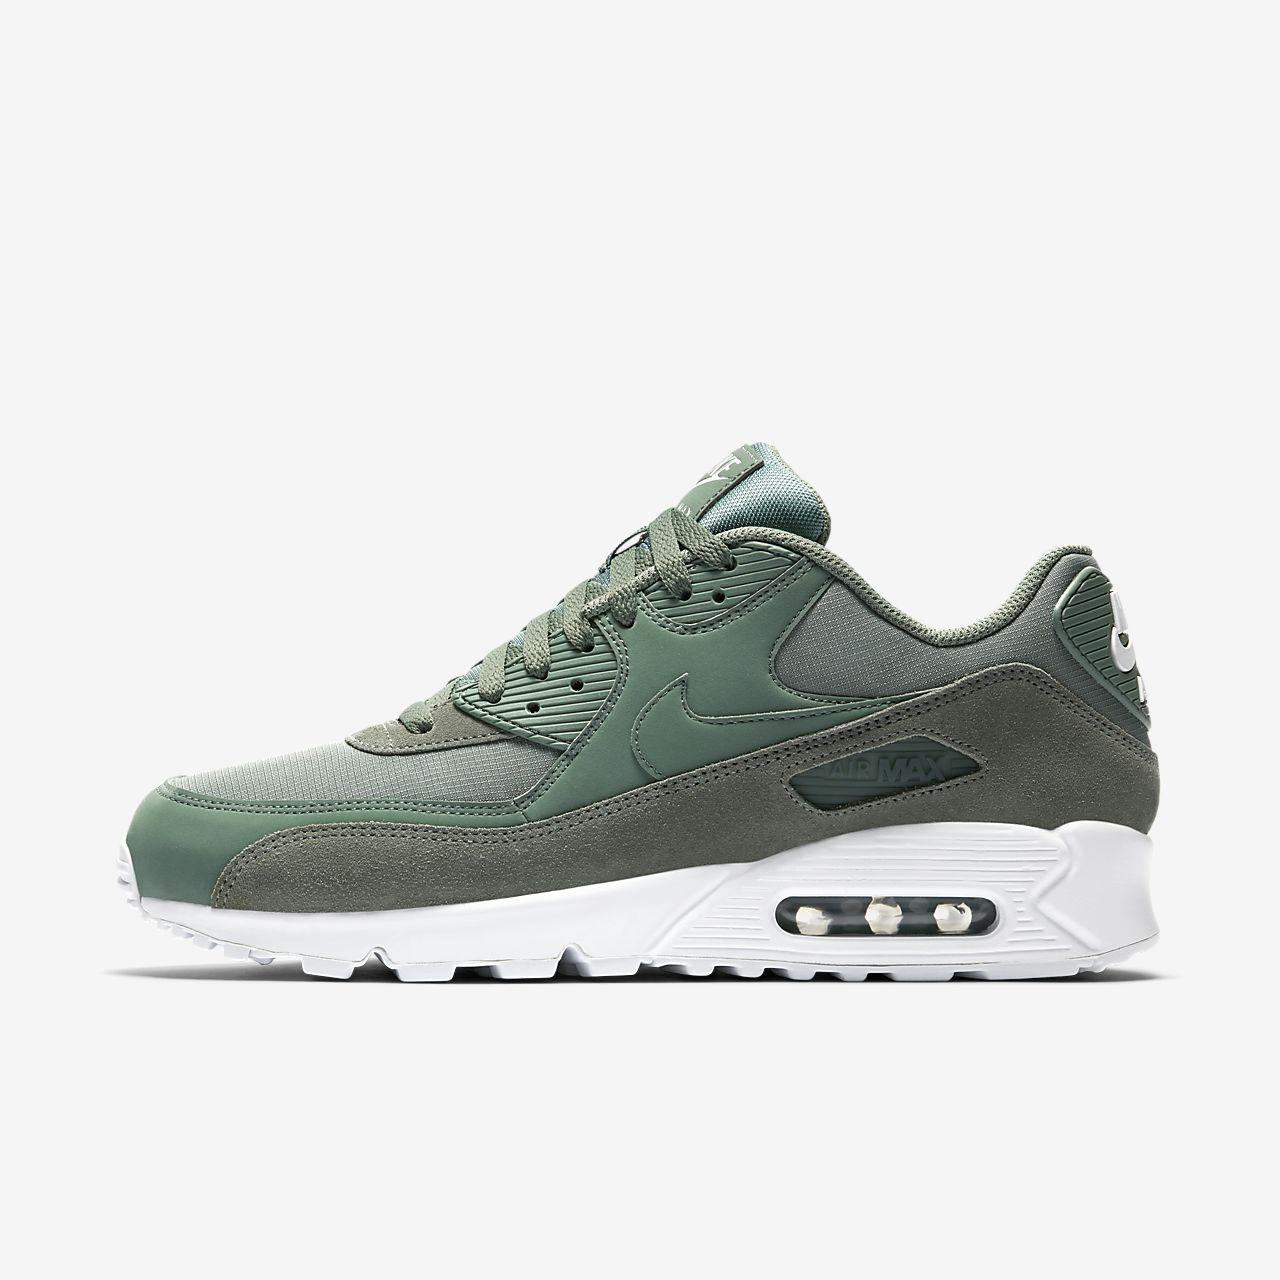 various colors b2c11 aa442 Nike Air Max 90 Essential Herrenschuh Klassisch Klassisch Klassisch und  Komfort-AR2298DS e50693